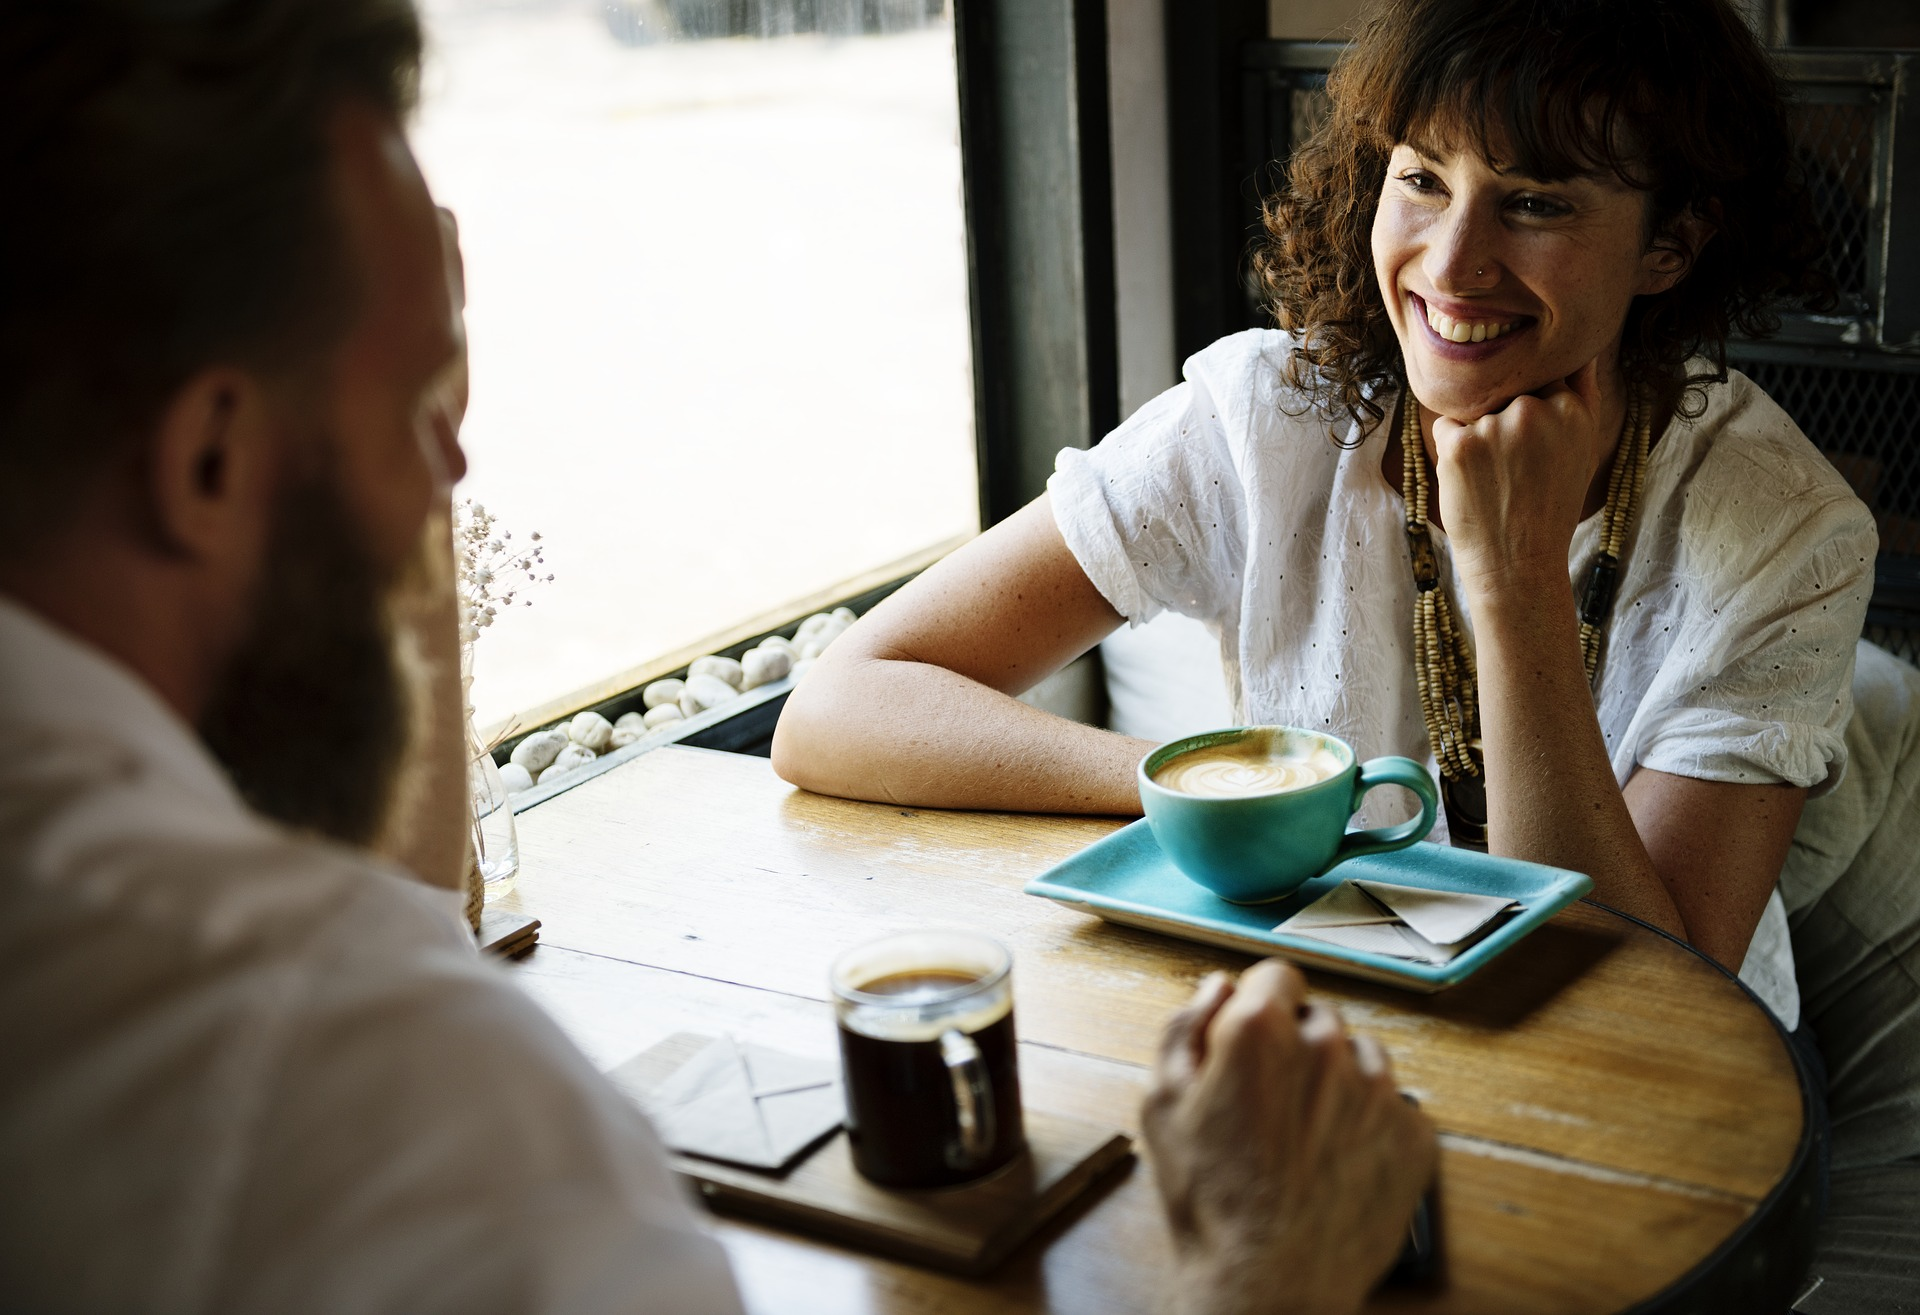 Man and woman talking over a cup of coffee